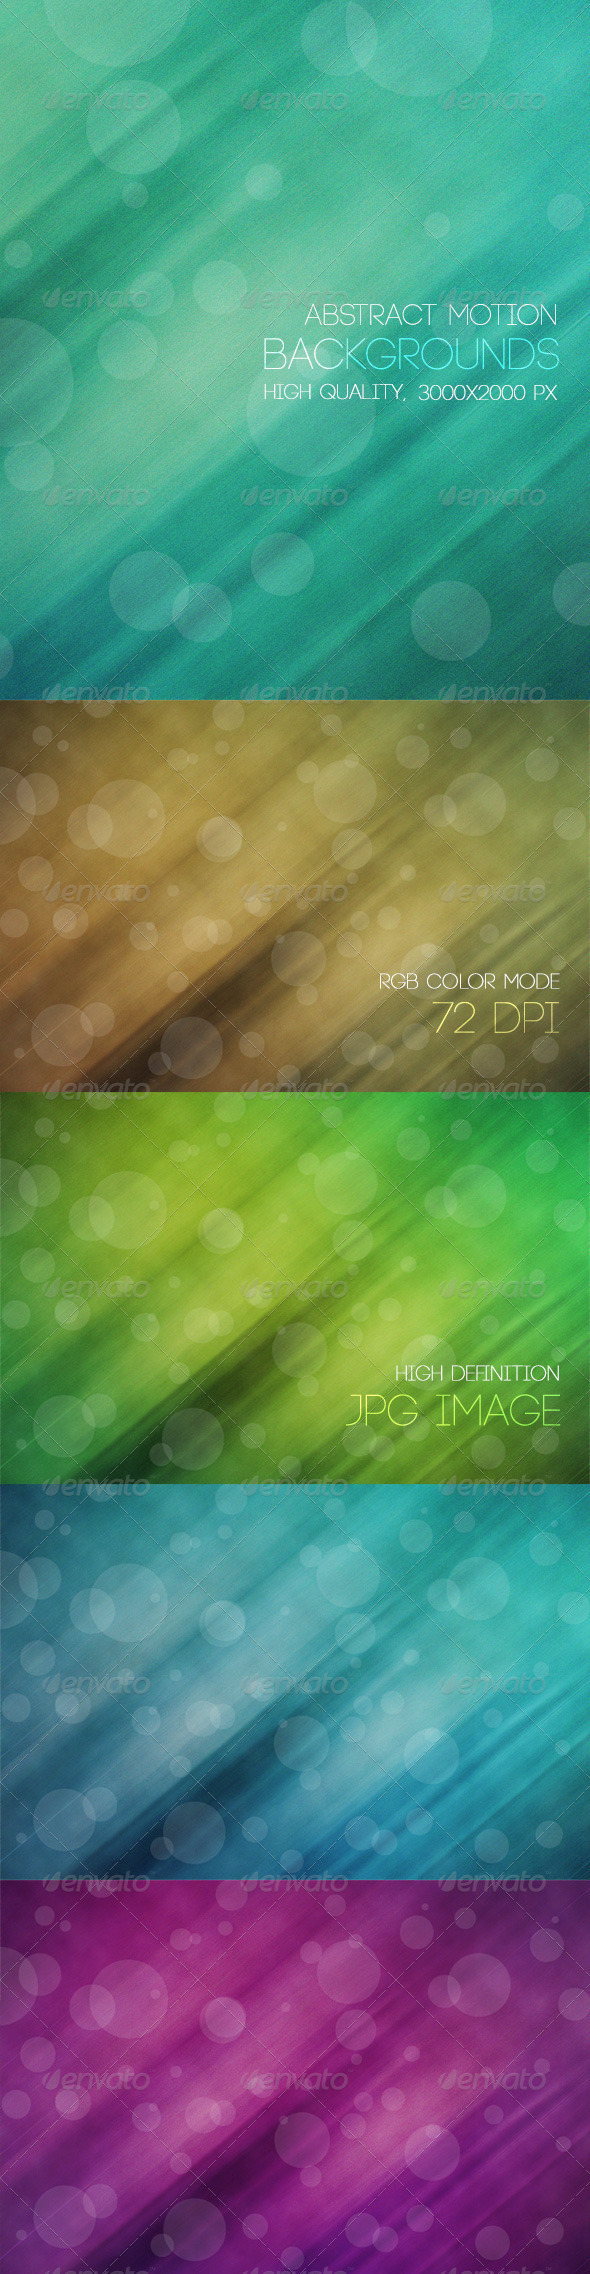 GraphicRiver Abstract Motion Backgrounds 7517613